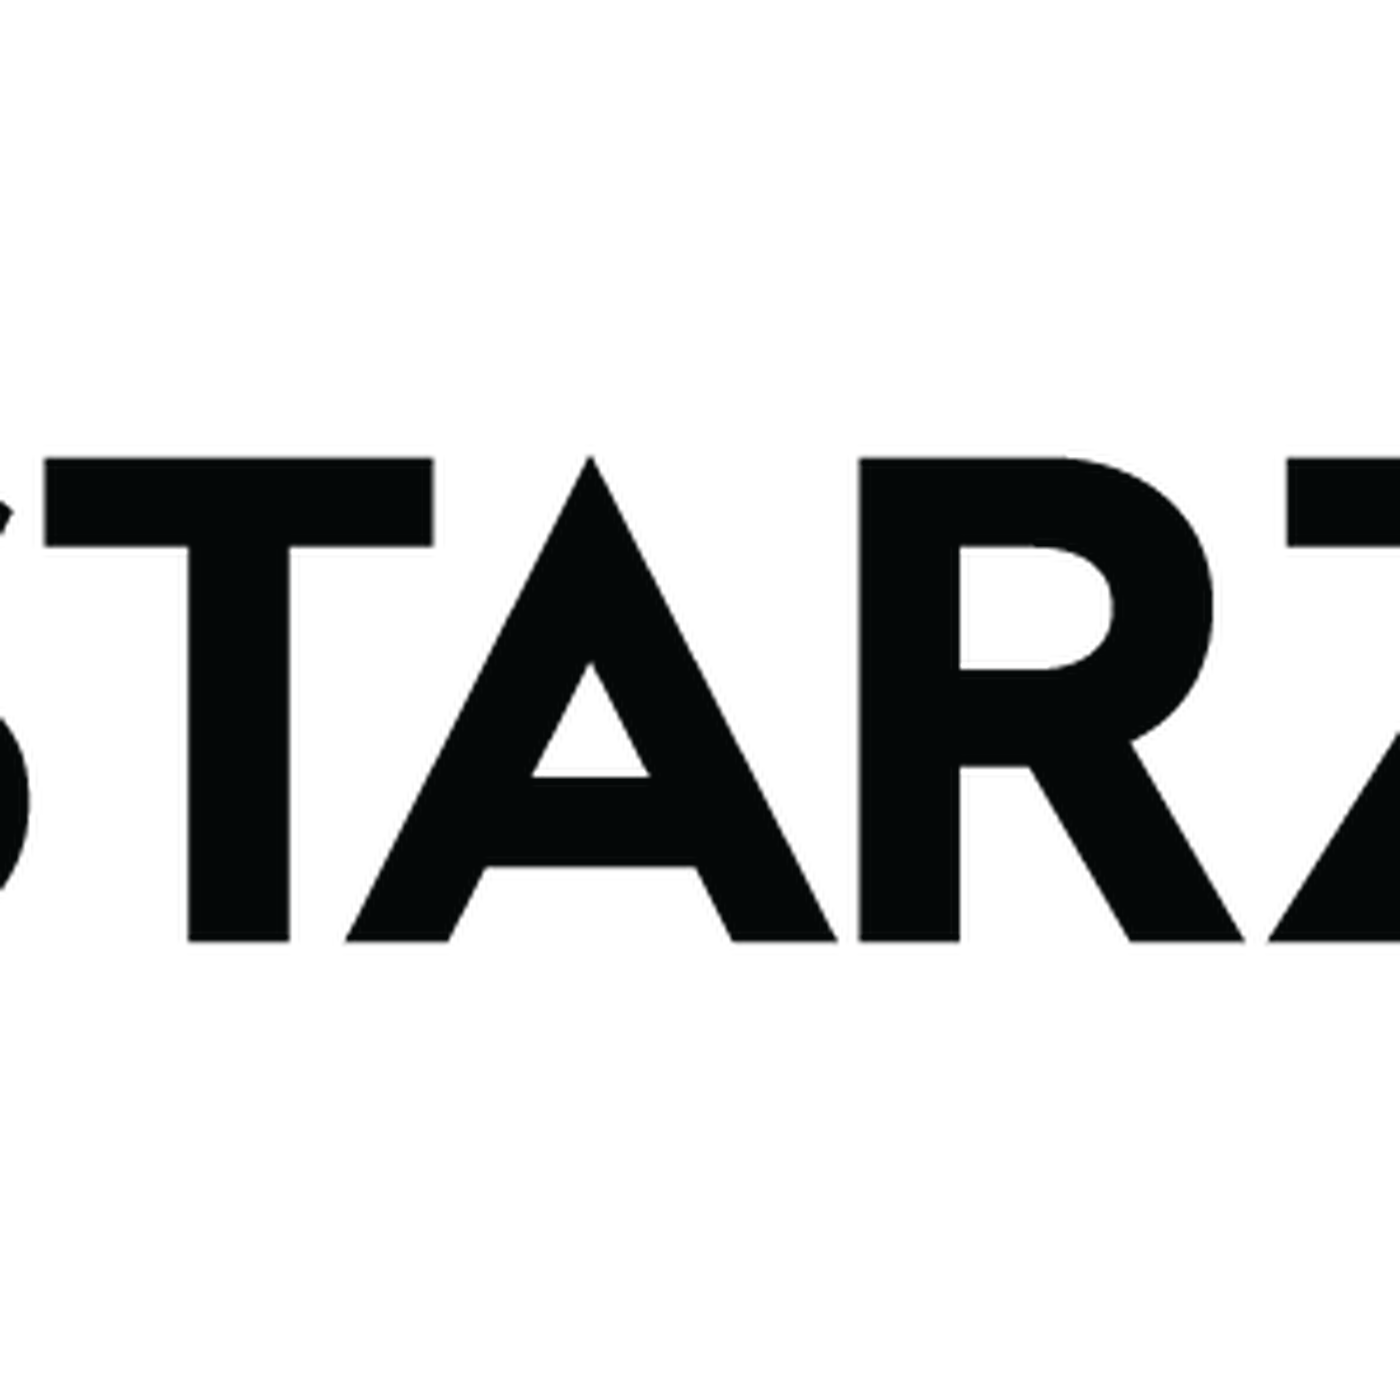 Starz joins YouTube TV as a $9 per month premium add-on